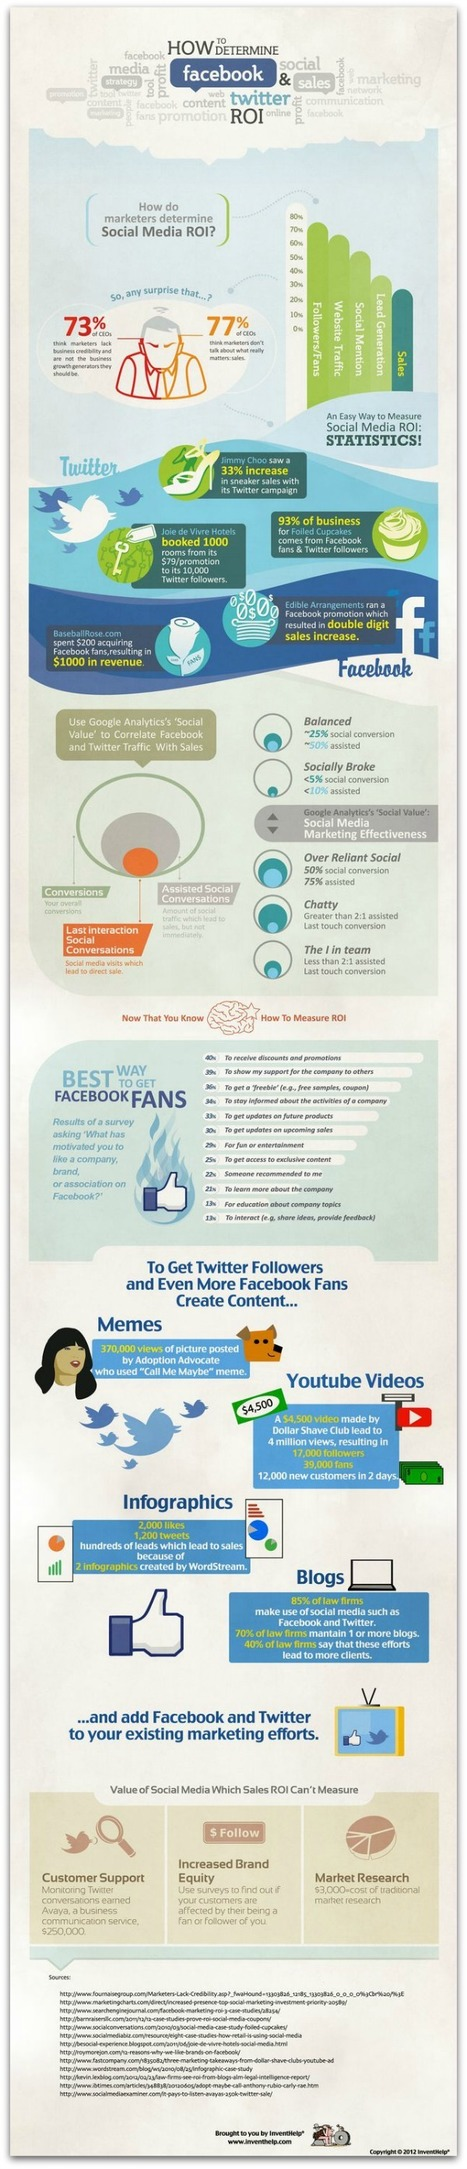 Infographic: How to measure Facebook and Twitter ROI | Beyond Social Medias | Scoop.it